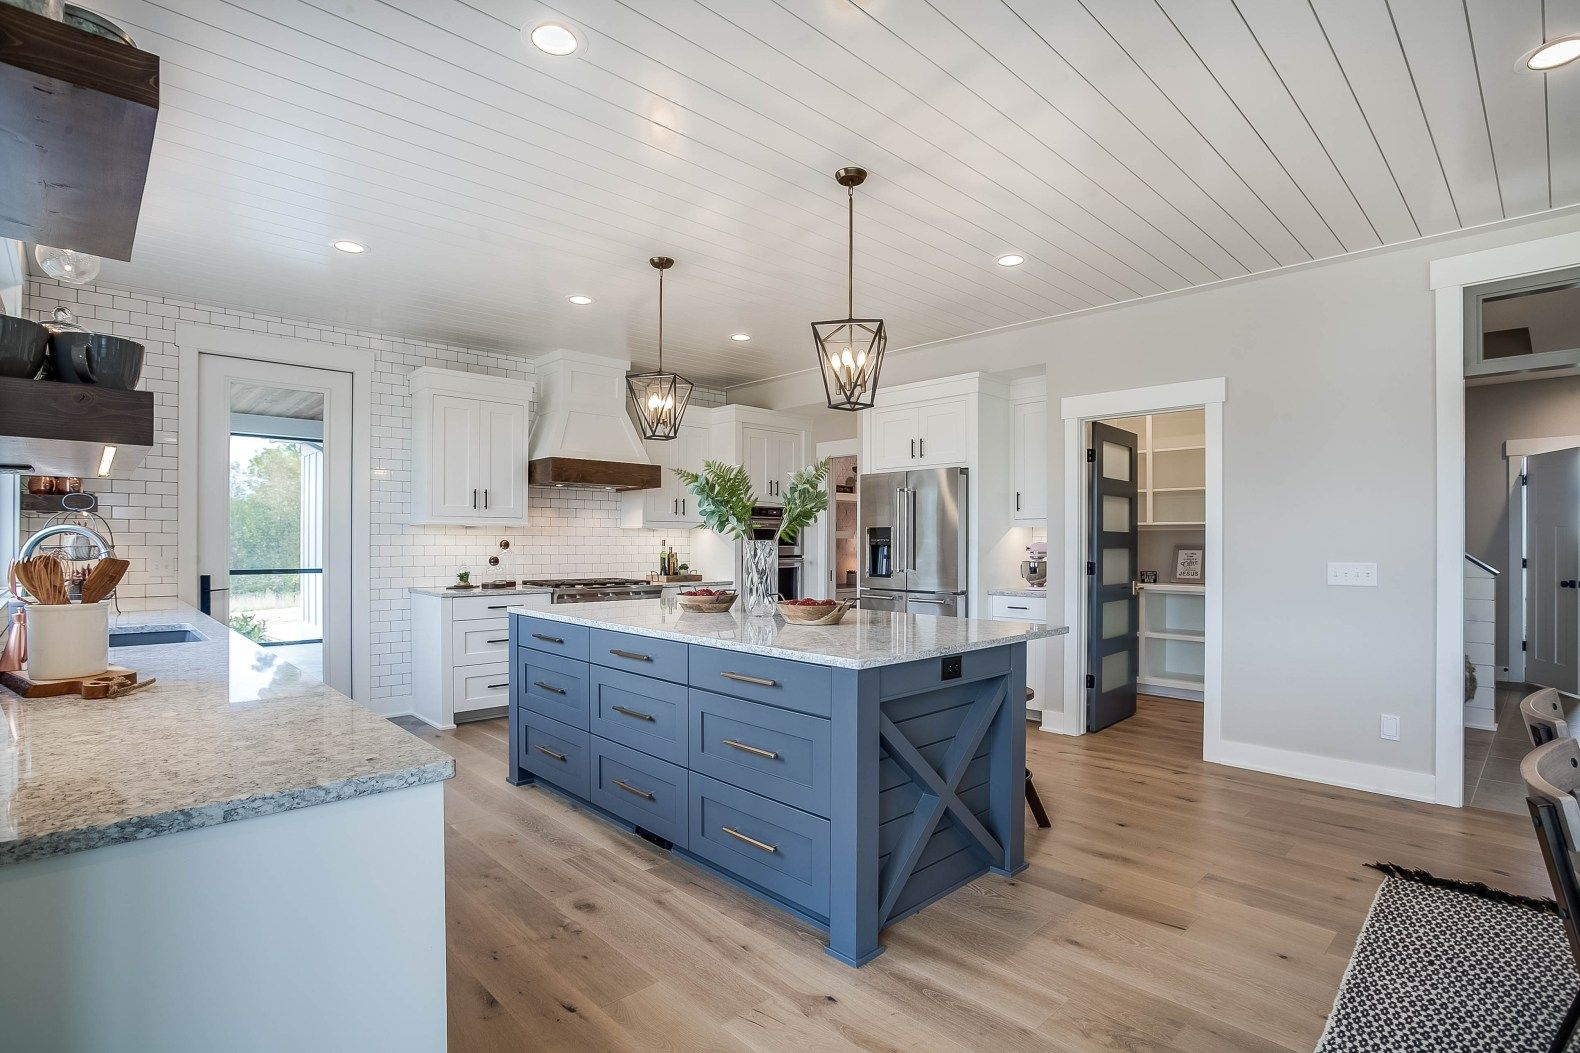 Modern Farmhouse Kitchen With Gray Blue Painted Kitchen Island